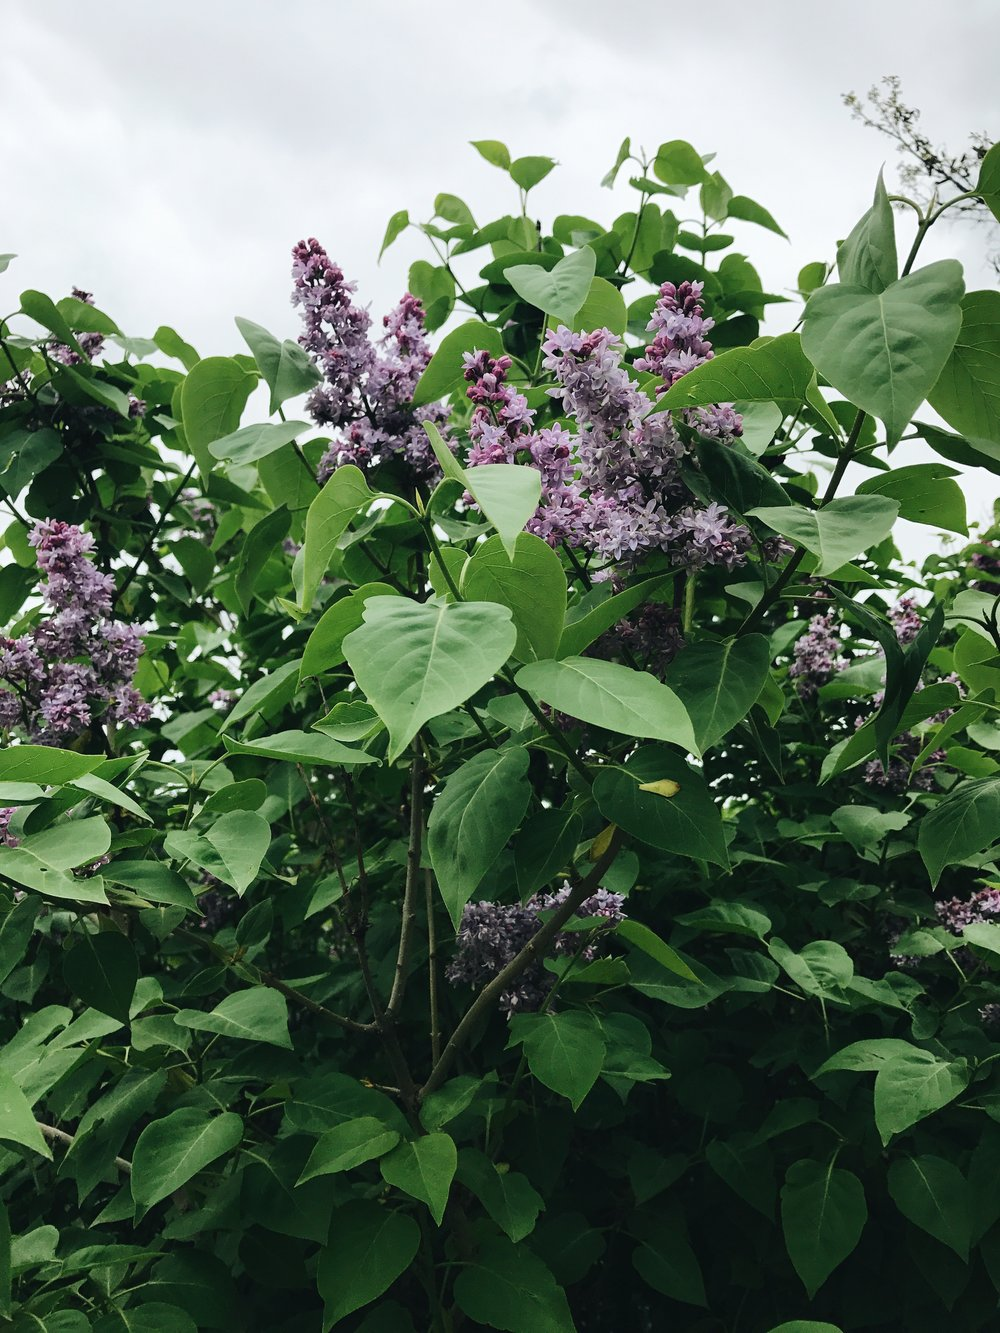 Heavenly smelling lilacs i pass by during morning runs.